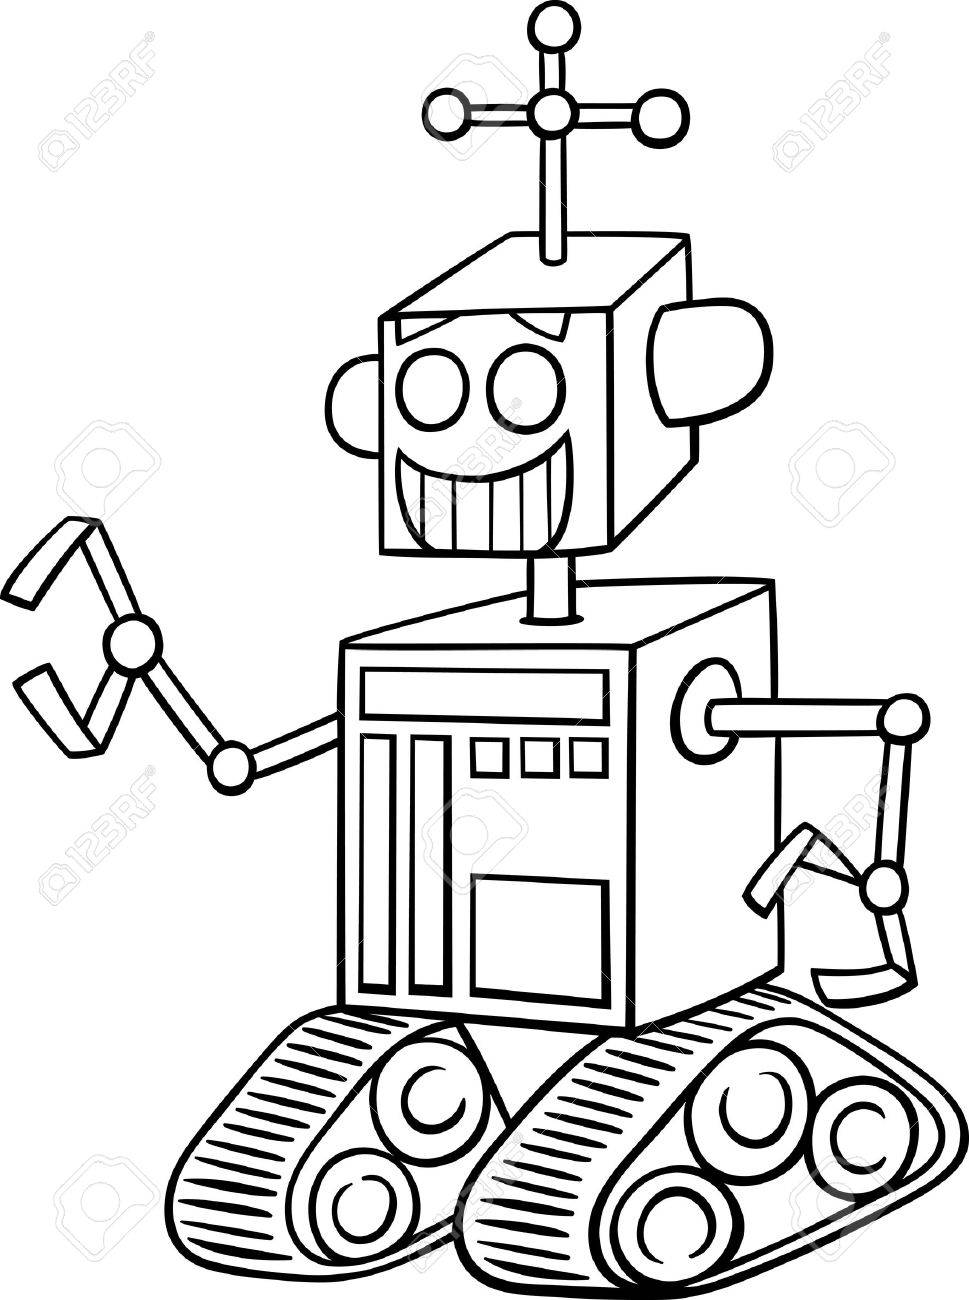 Robot black and white clipart 4 » Clipart Station.